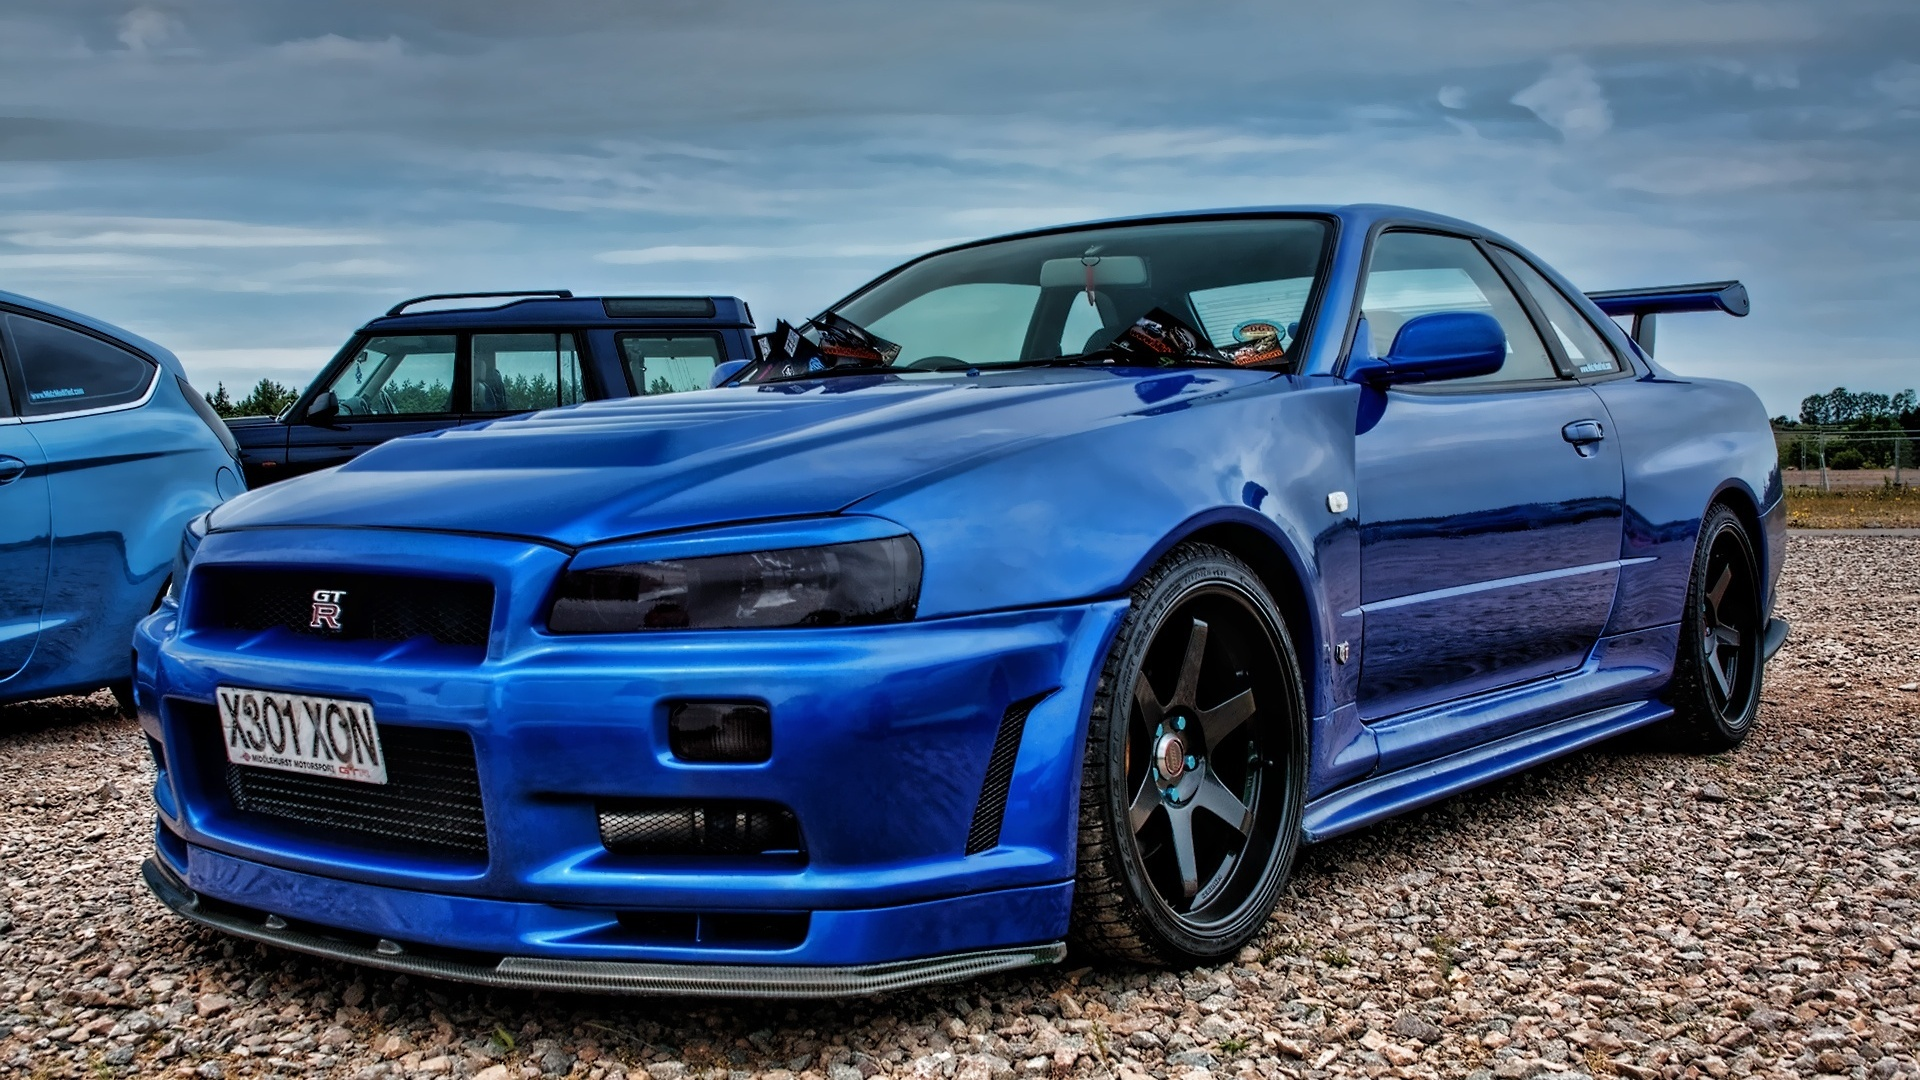 Nissan Skyline R34 Wallpapers Vehicles Hq Nissan Skyline R34